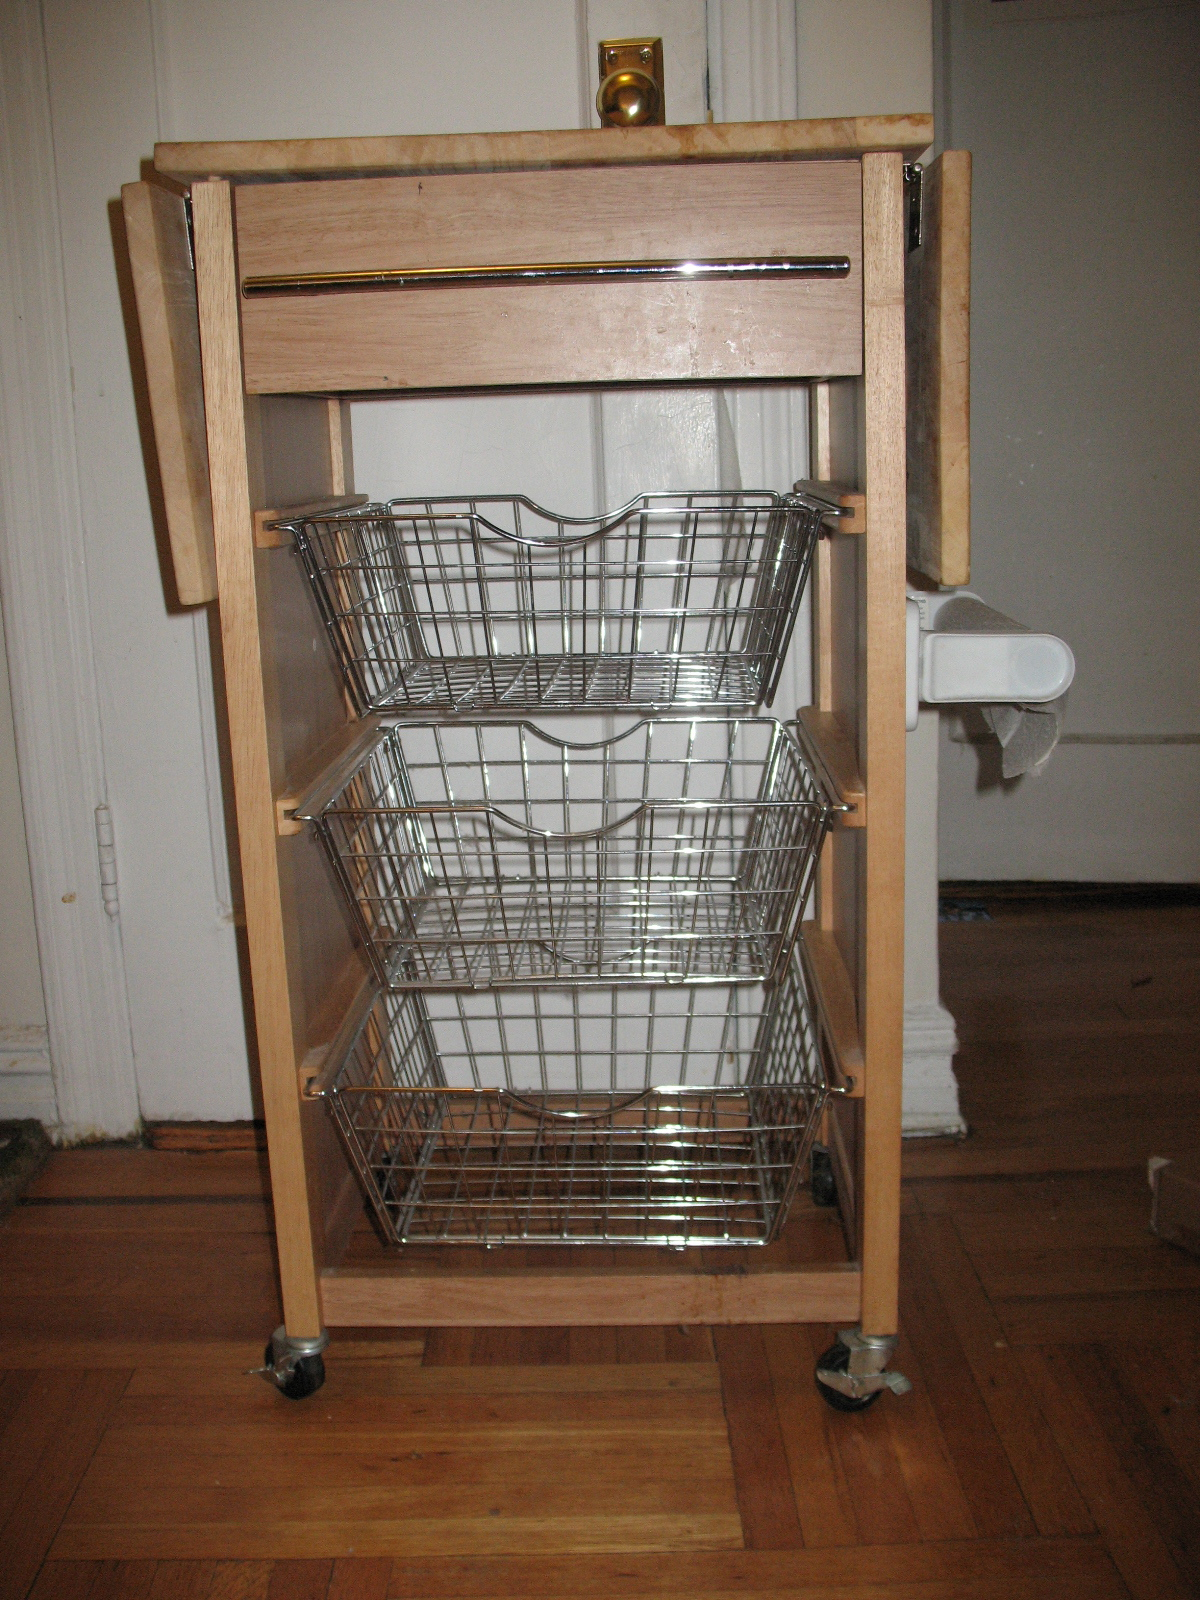 Printer Table Ikea Cutting Board Table With Wire Basket-drawers | Sarah And